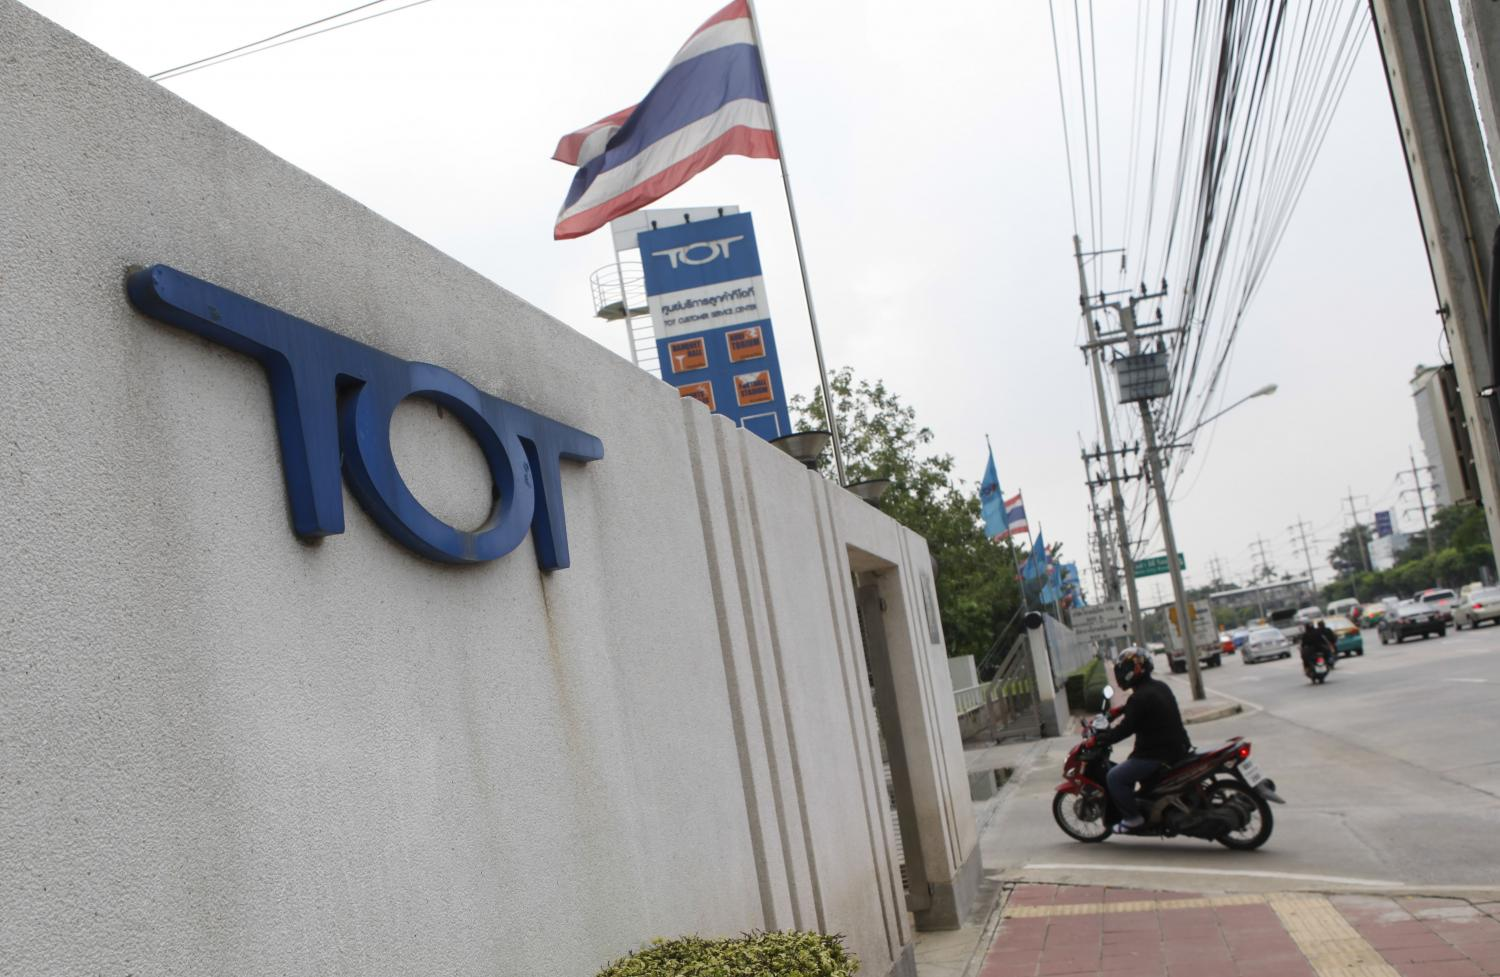 TOT is studying the LEO satellite business and conducted program coding tests at existing satellite ground stations for months.(Photo by Pattarapong Chatpattarasill)